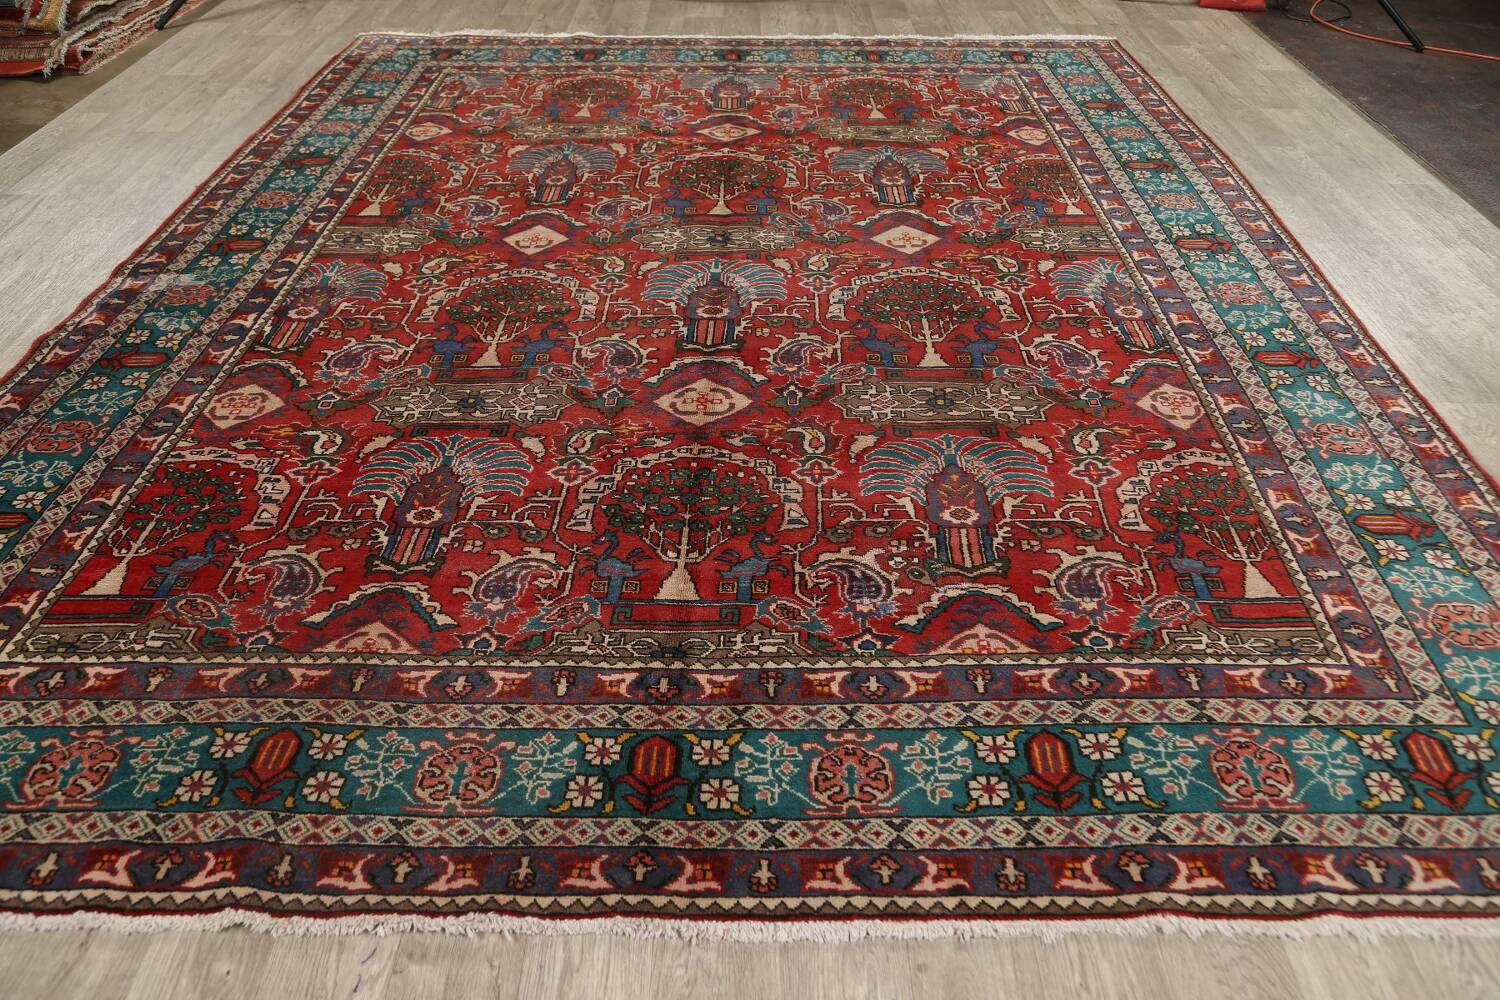 All-Over Pictorial Tabriz Persian Area Rug 9x11 image 21